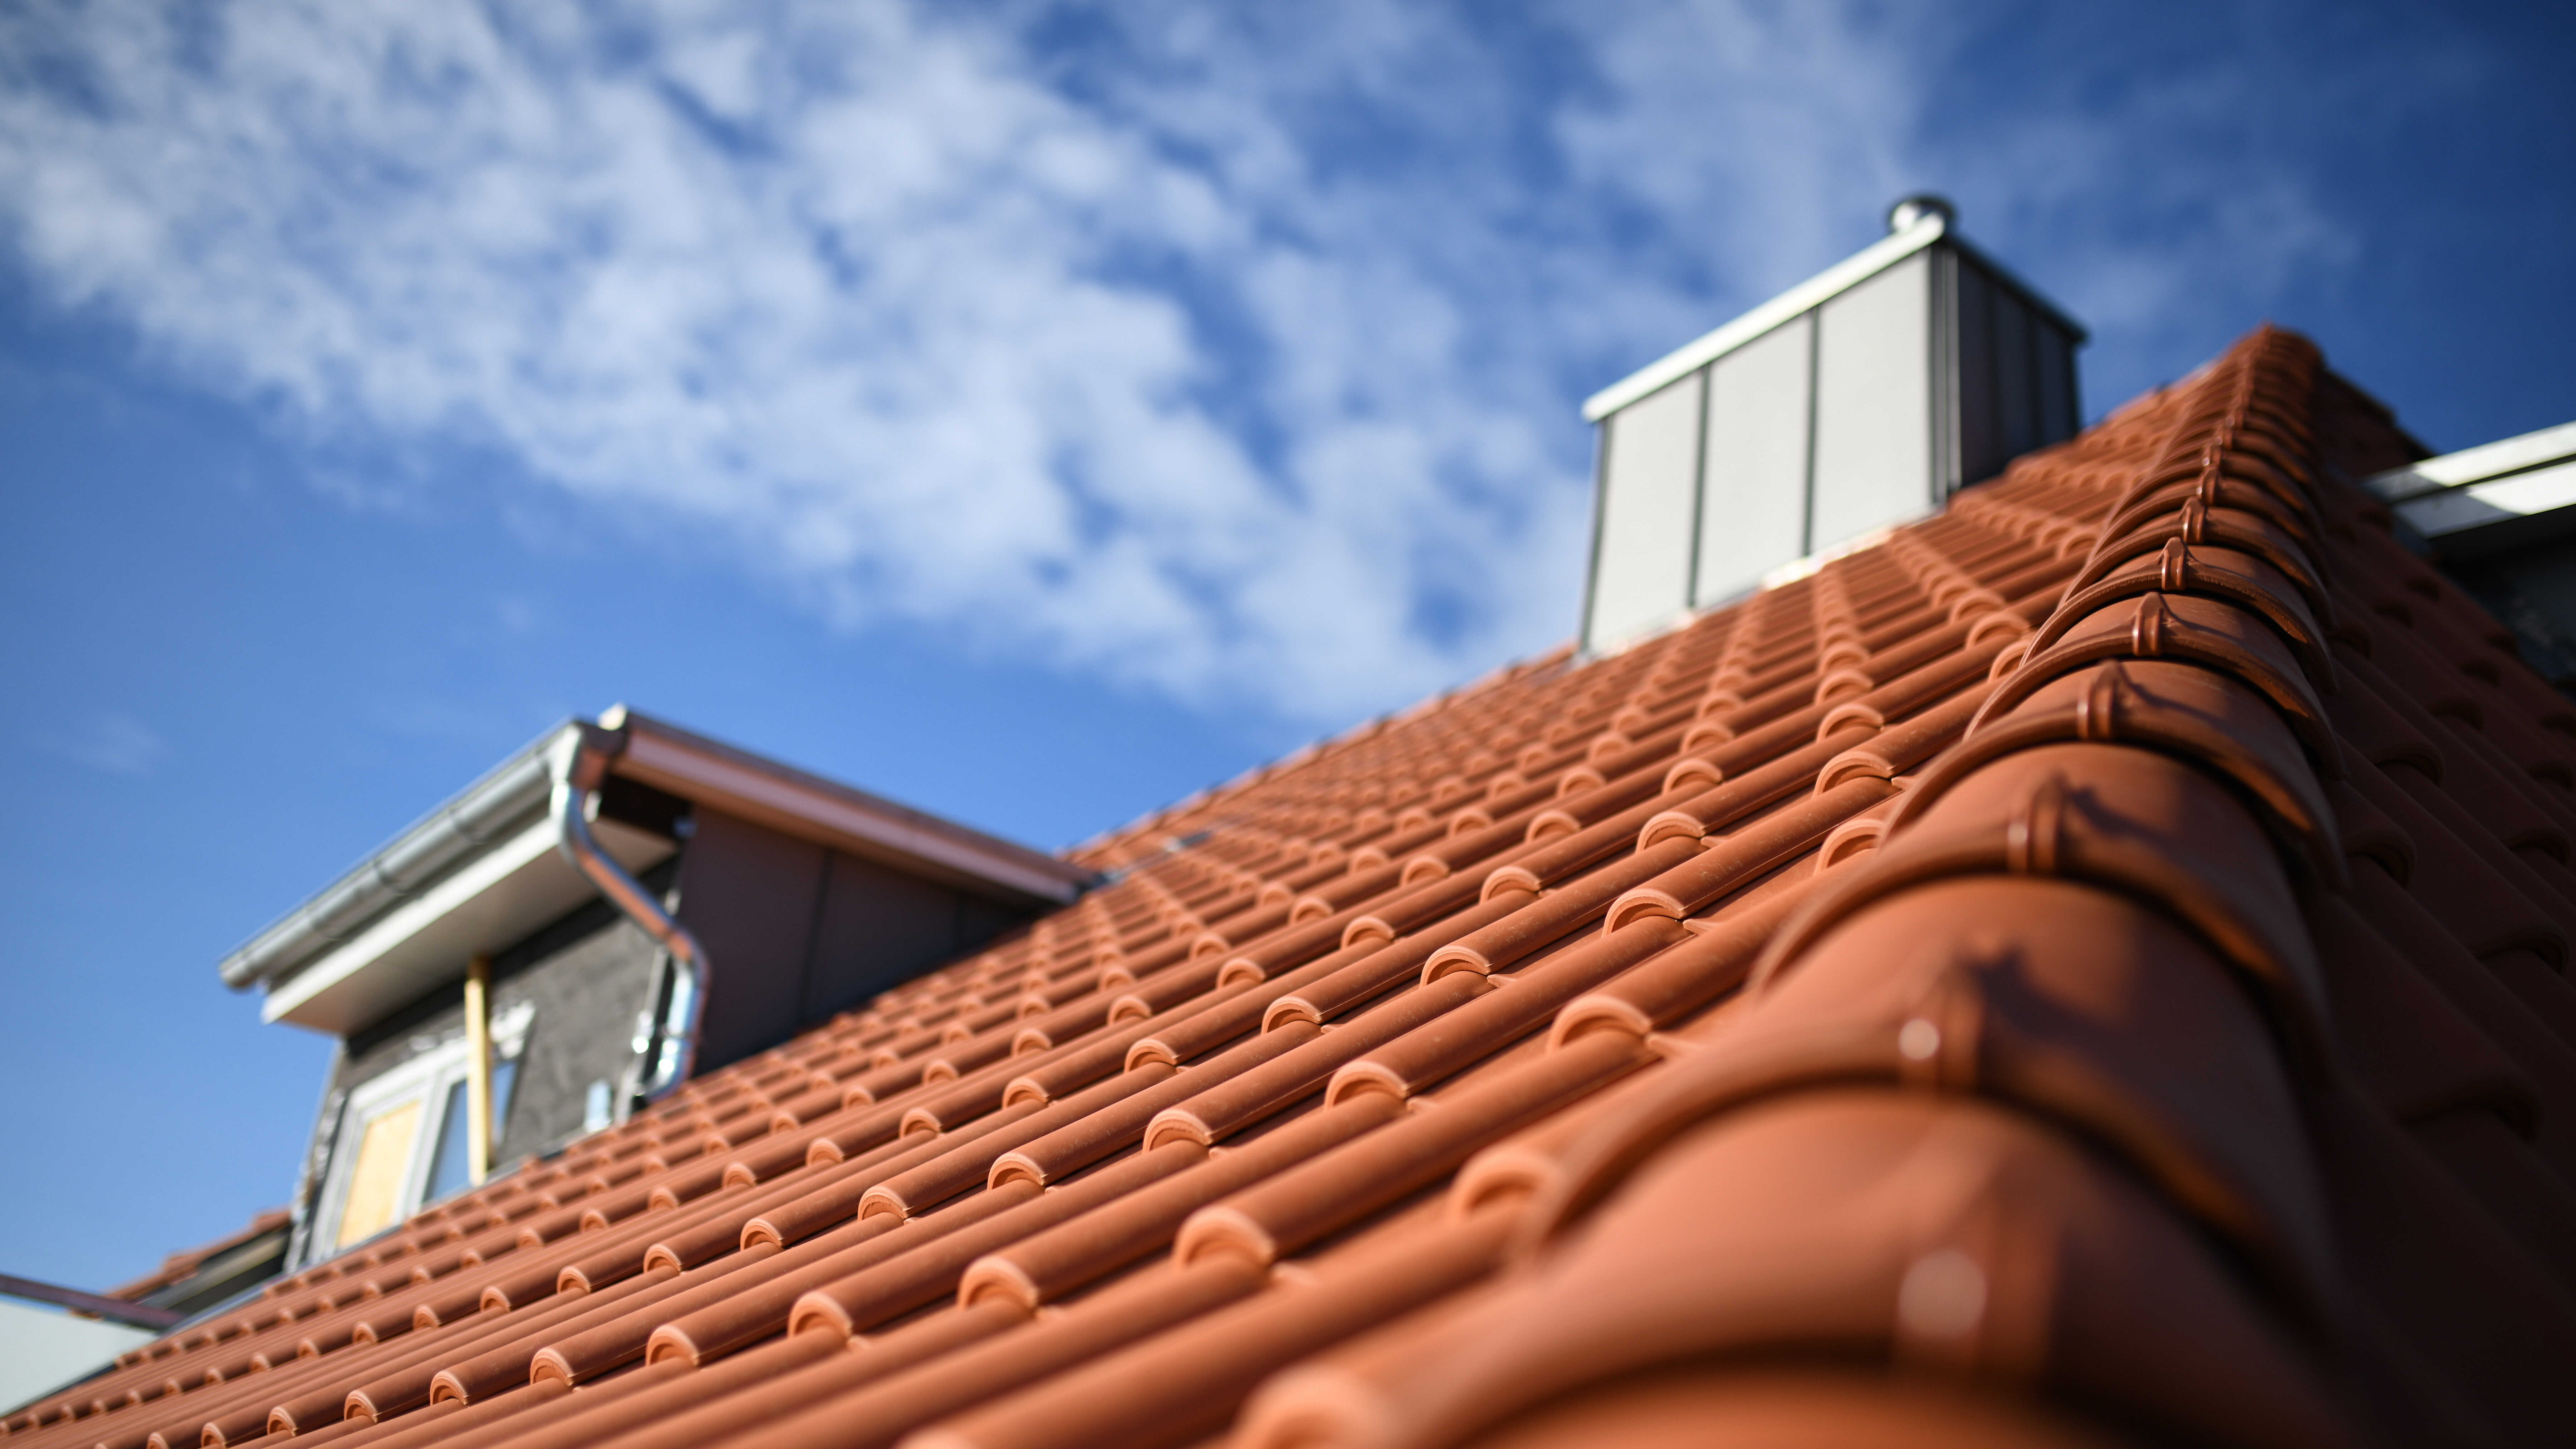 How to preform a roof inspection for winston salem homeowners